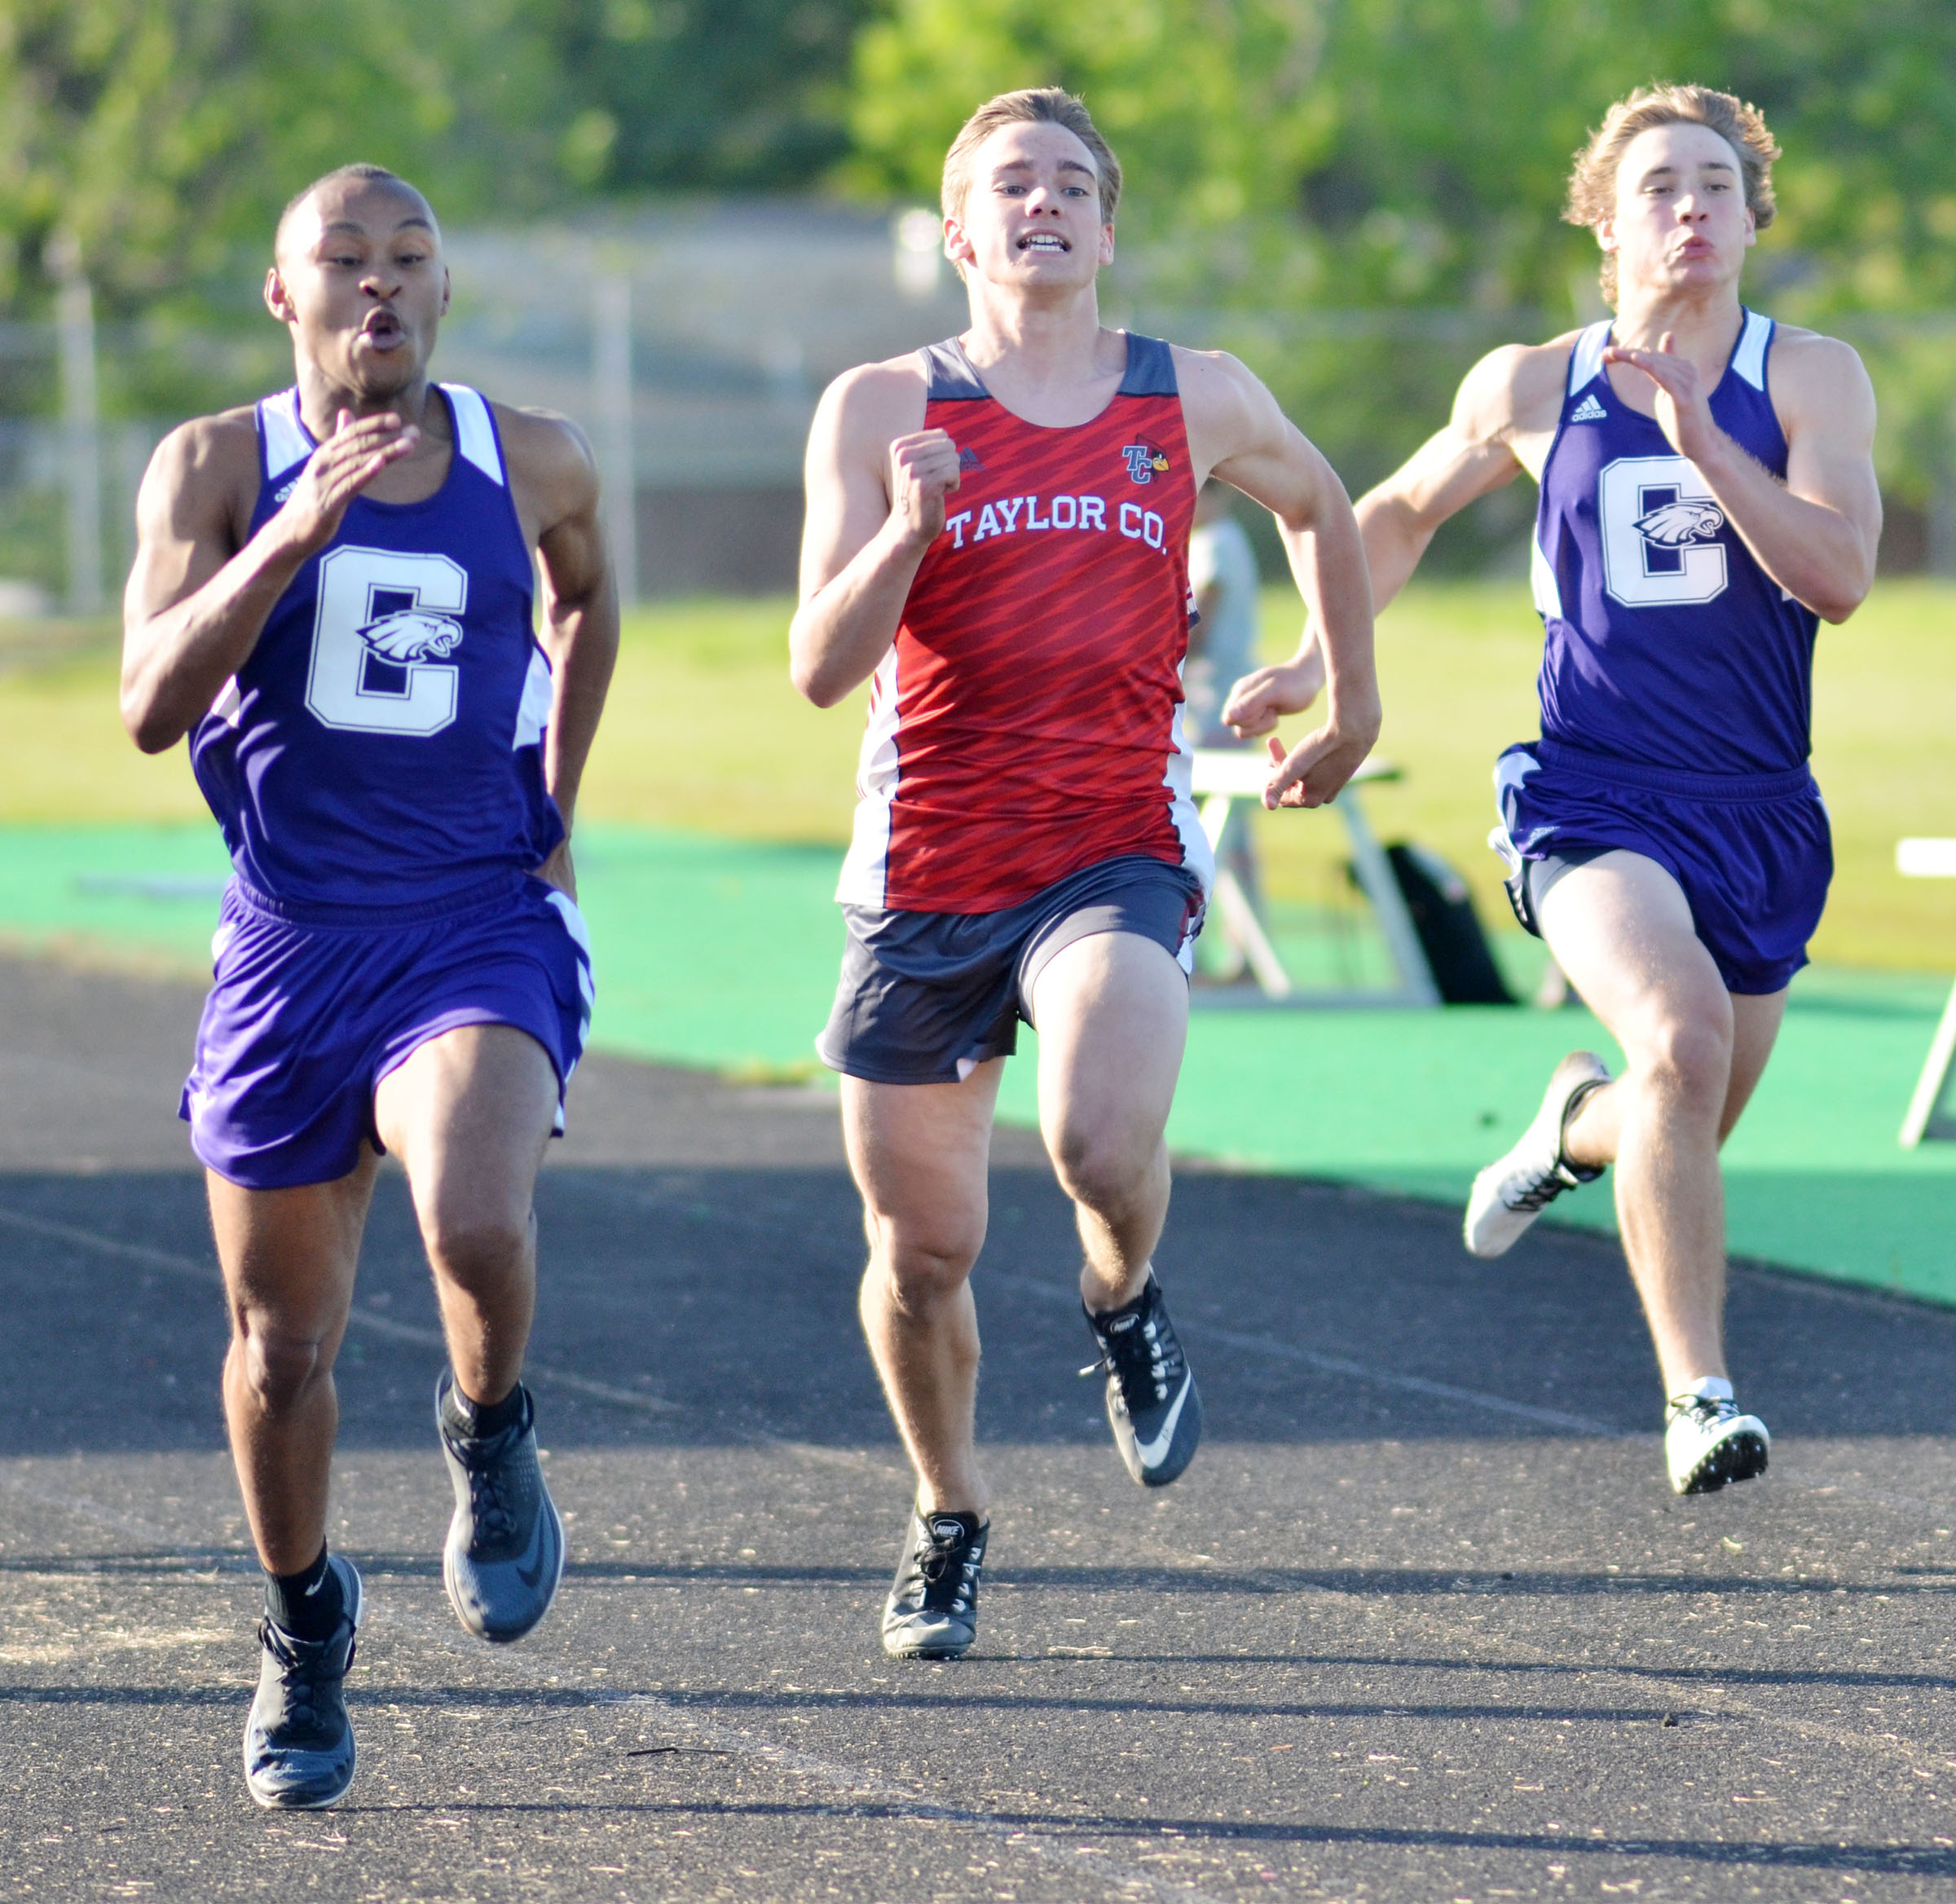 CHS sophomore Daesean Vancleave, at left, and classmate Tristan Johnson, at right, run the 100-meter dash.